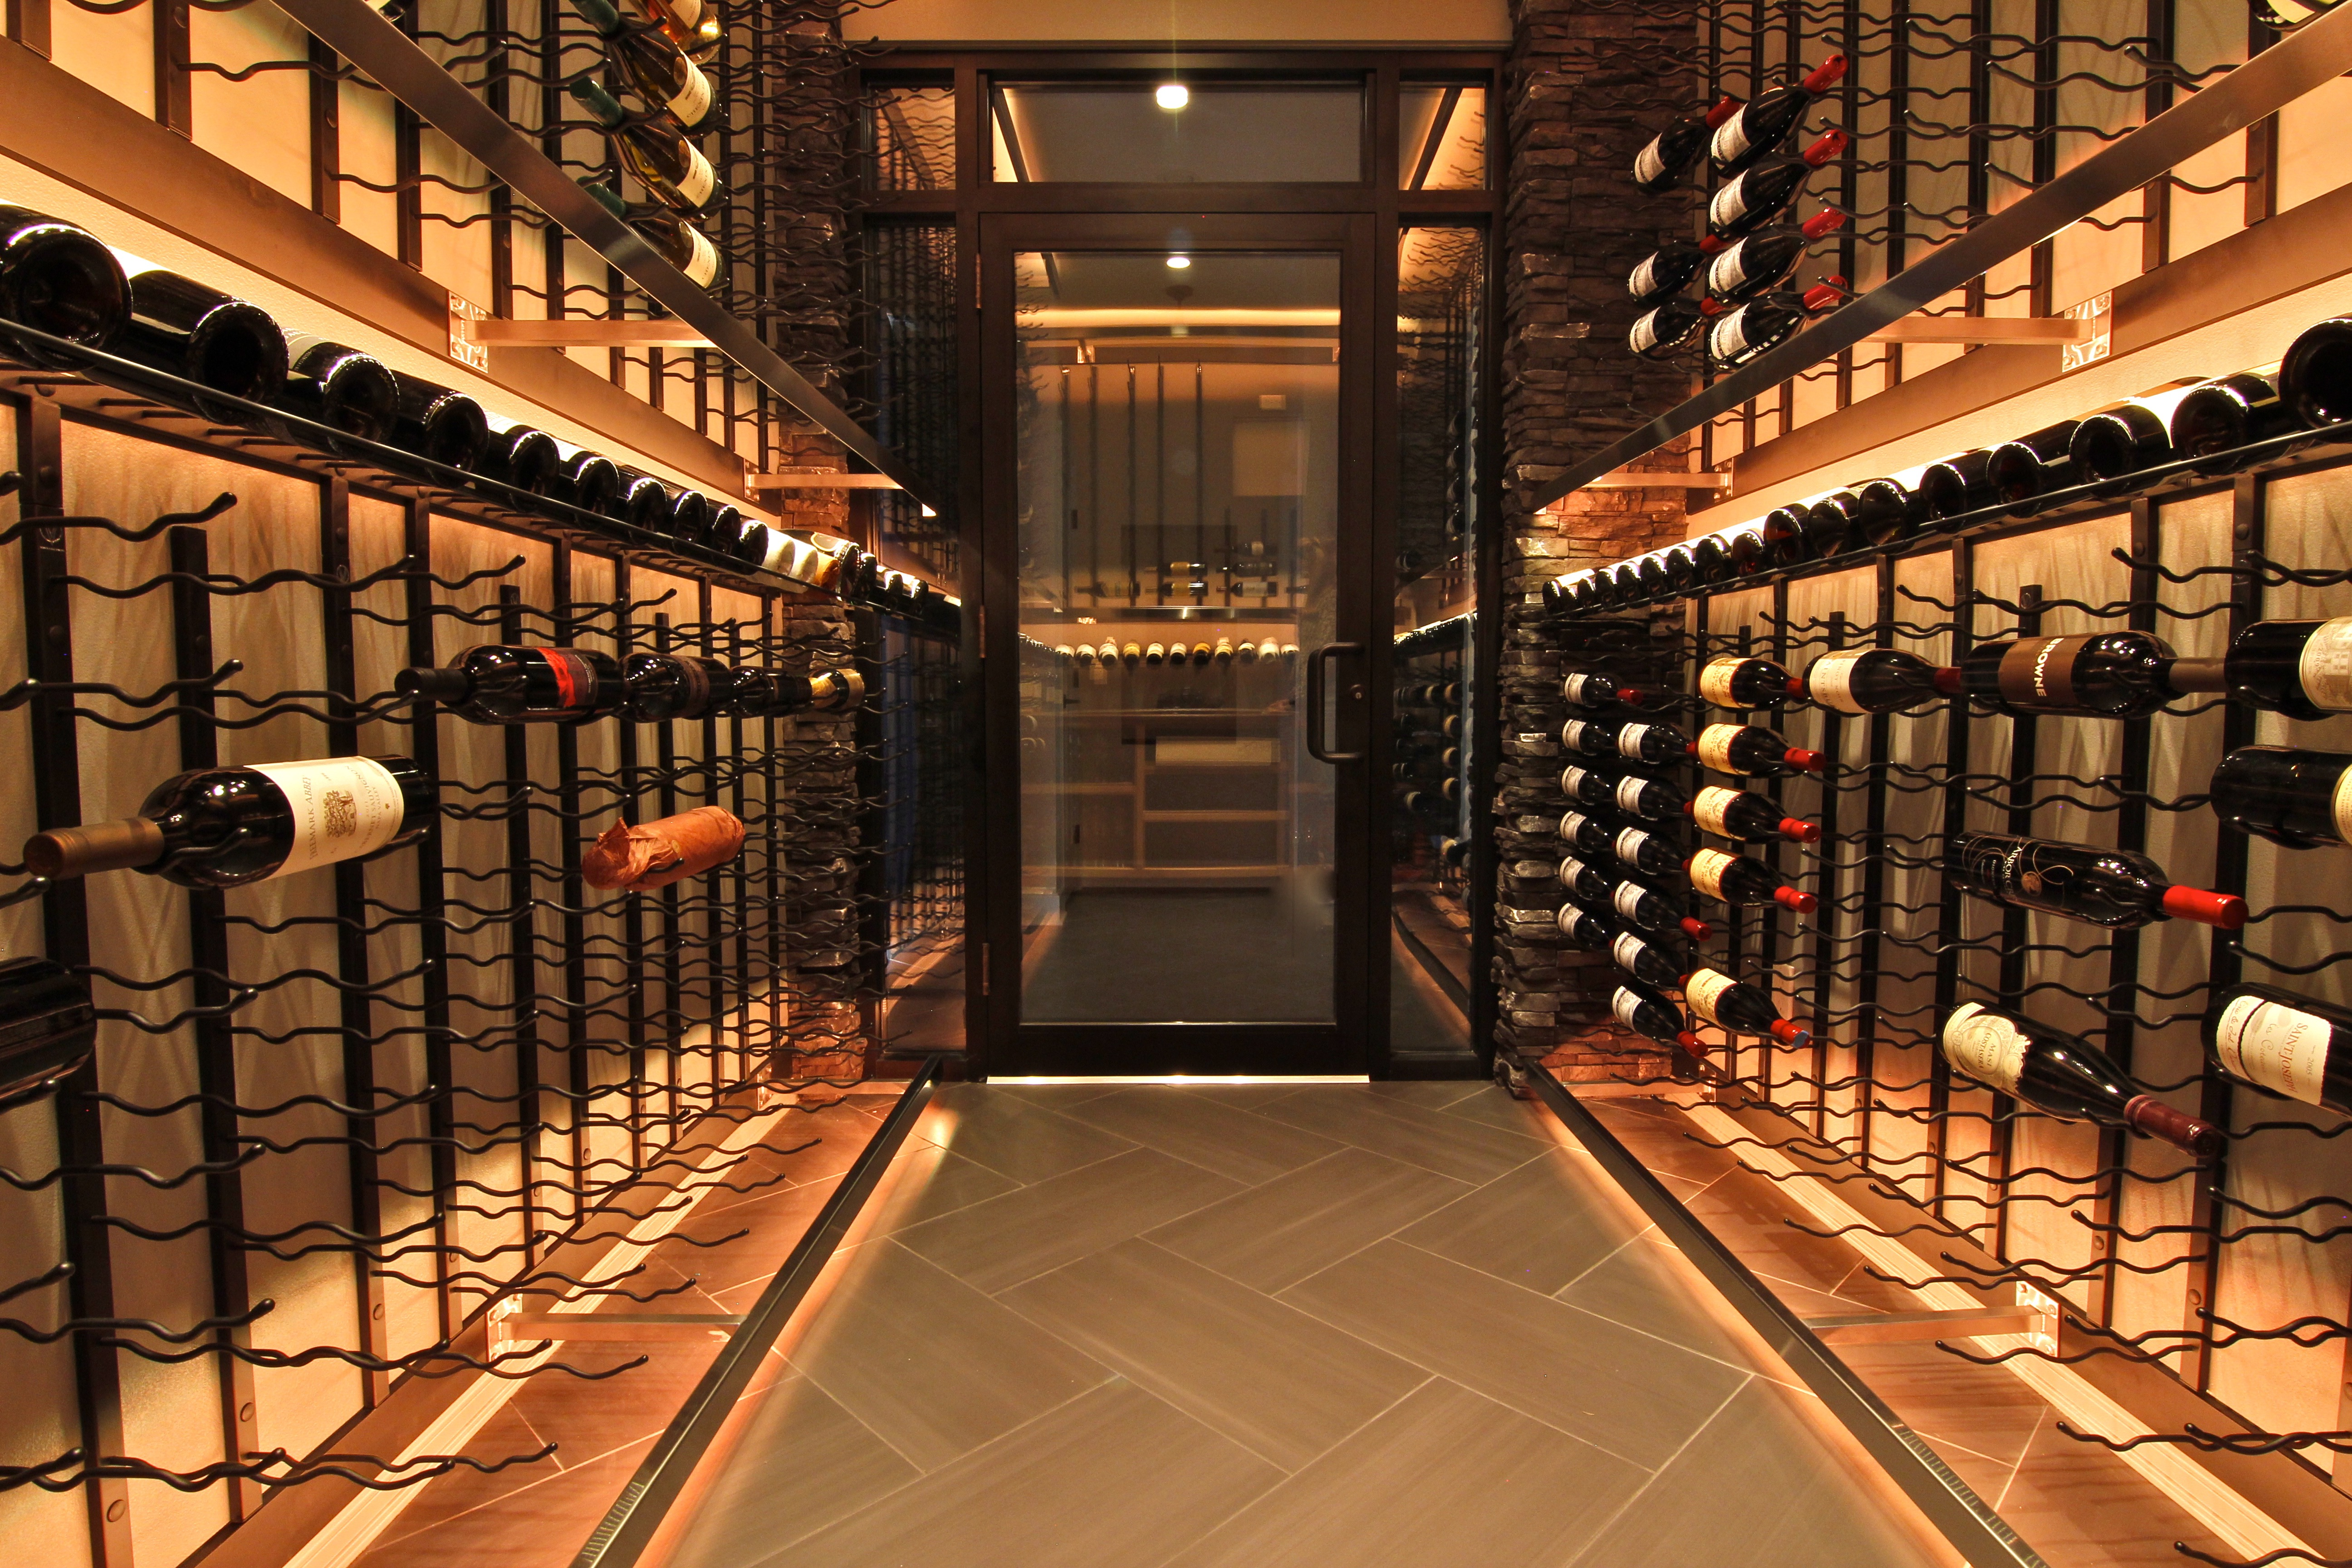 wine cellar lighting. Wine Cellar Lighting. Stailess Steel Light Bars Lighting James River Construction, Richmond VA